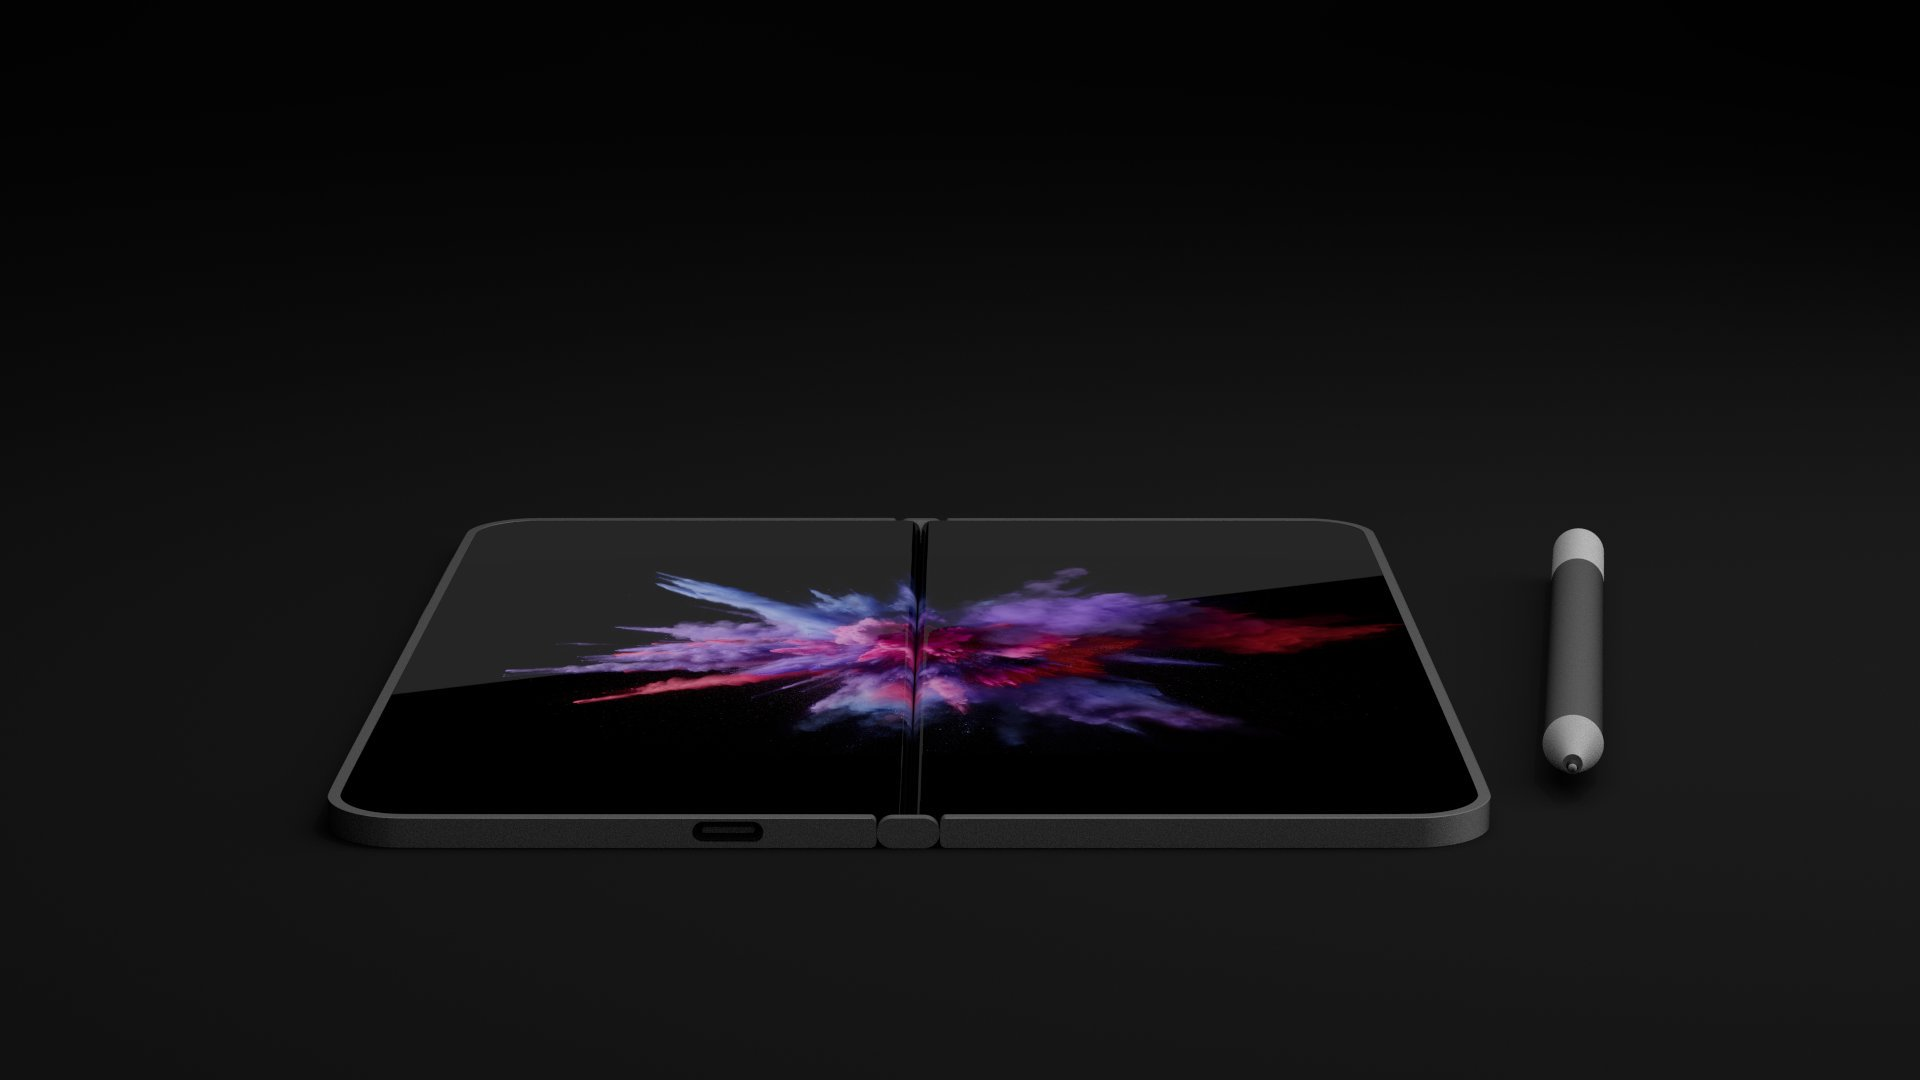 surface-phone-render-4.jpg